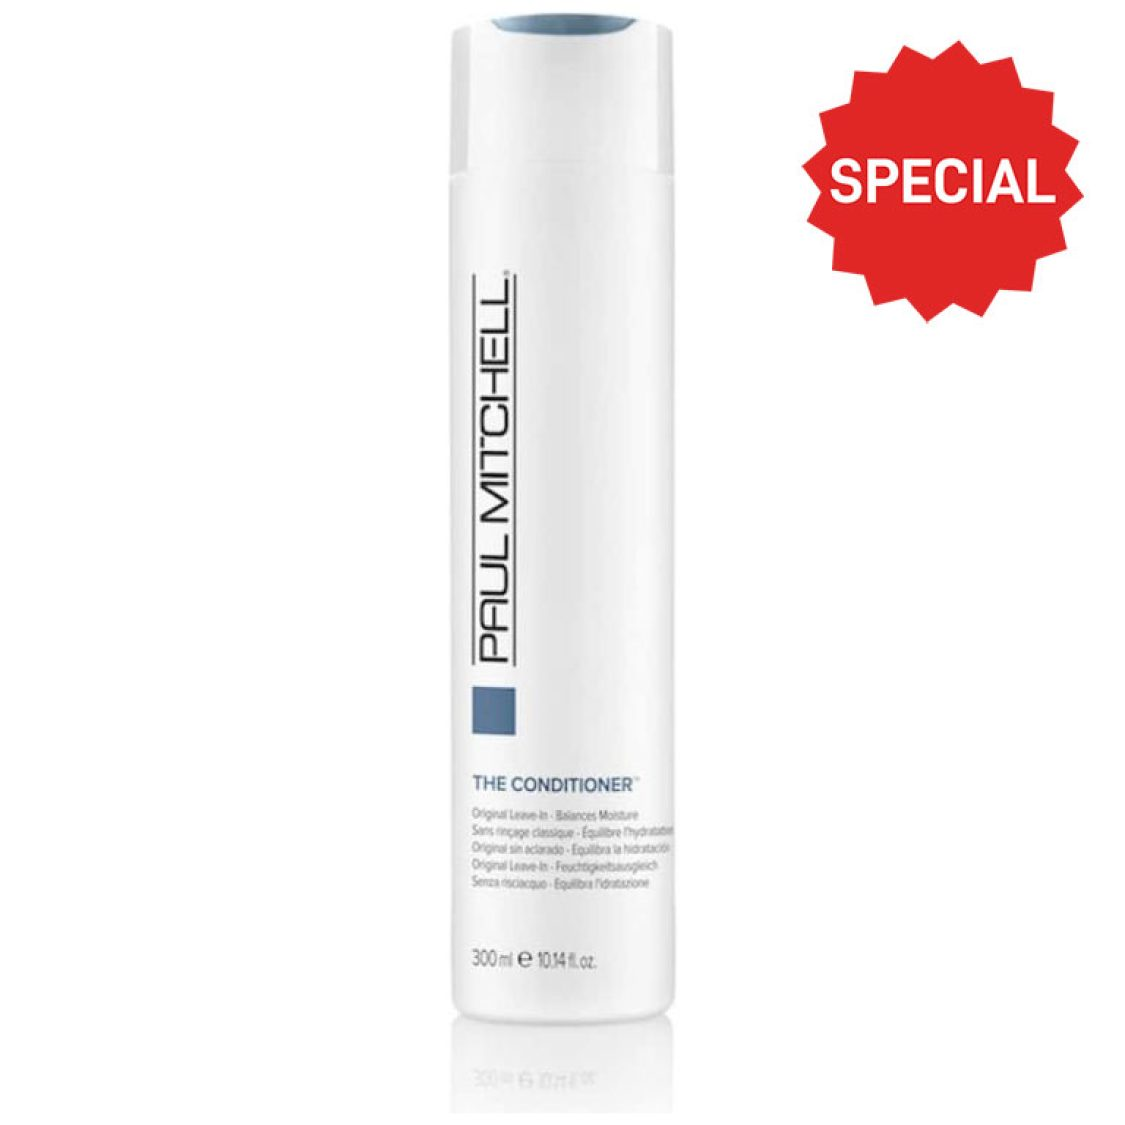 Paul Mitchell - Original - The Conditioner 300ml